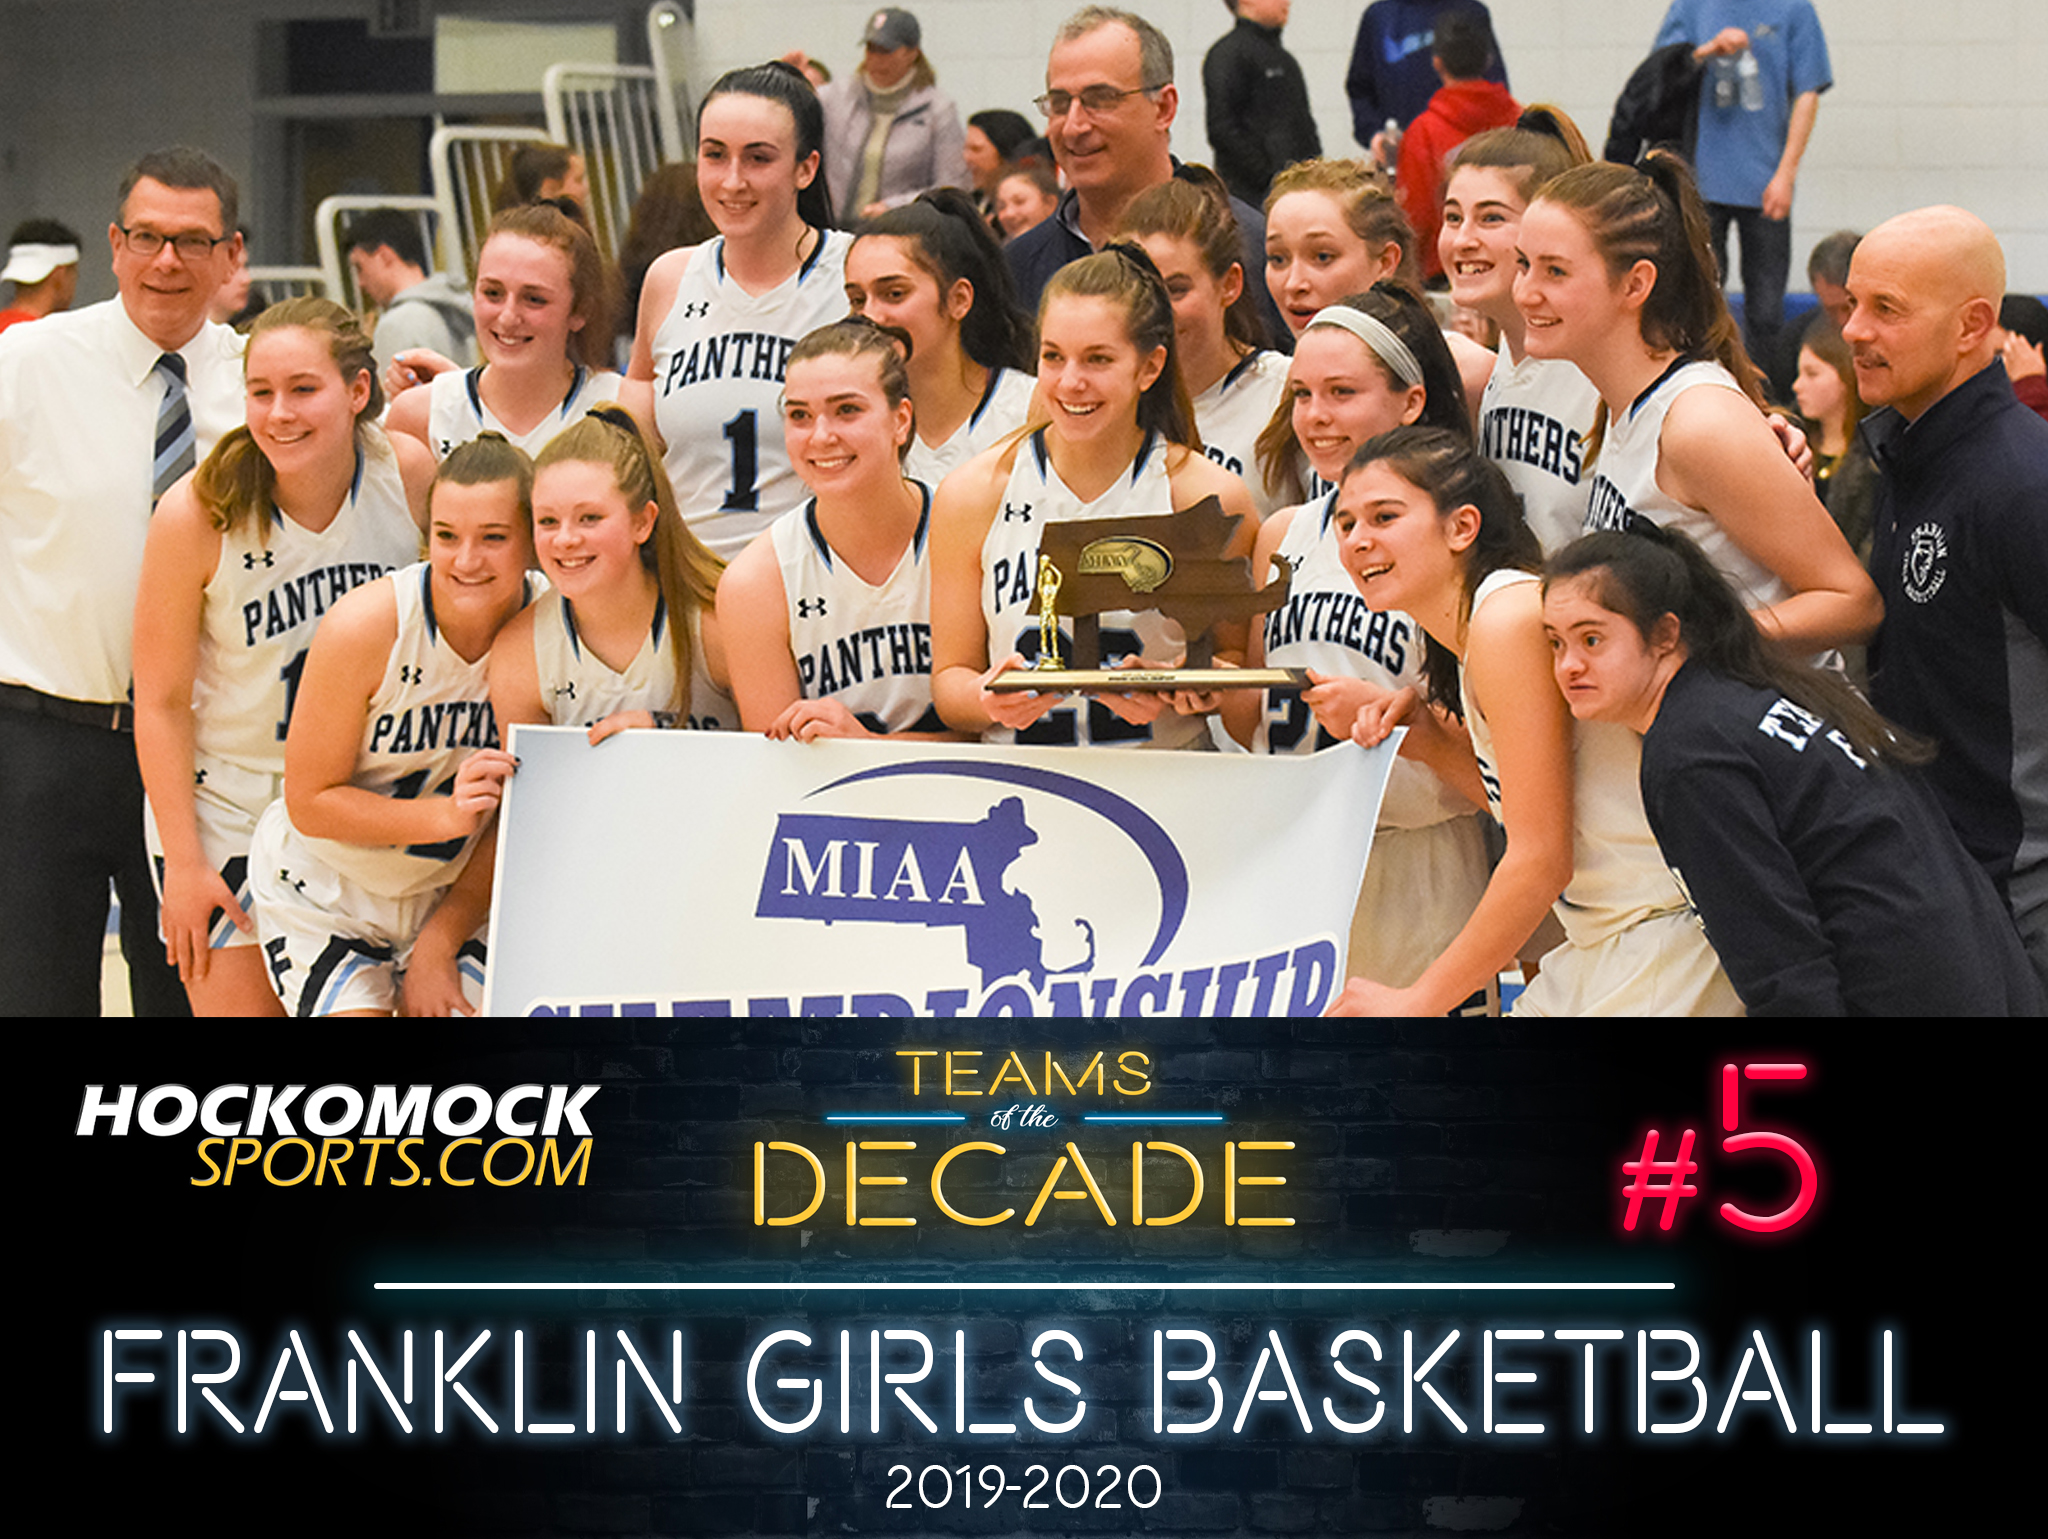 Franklin girls basketball